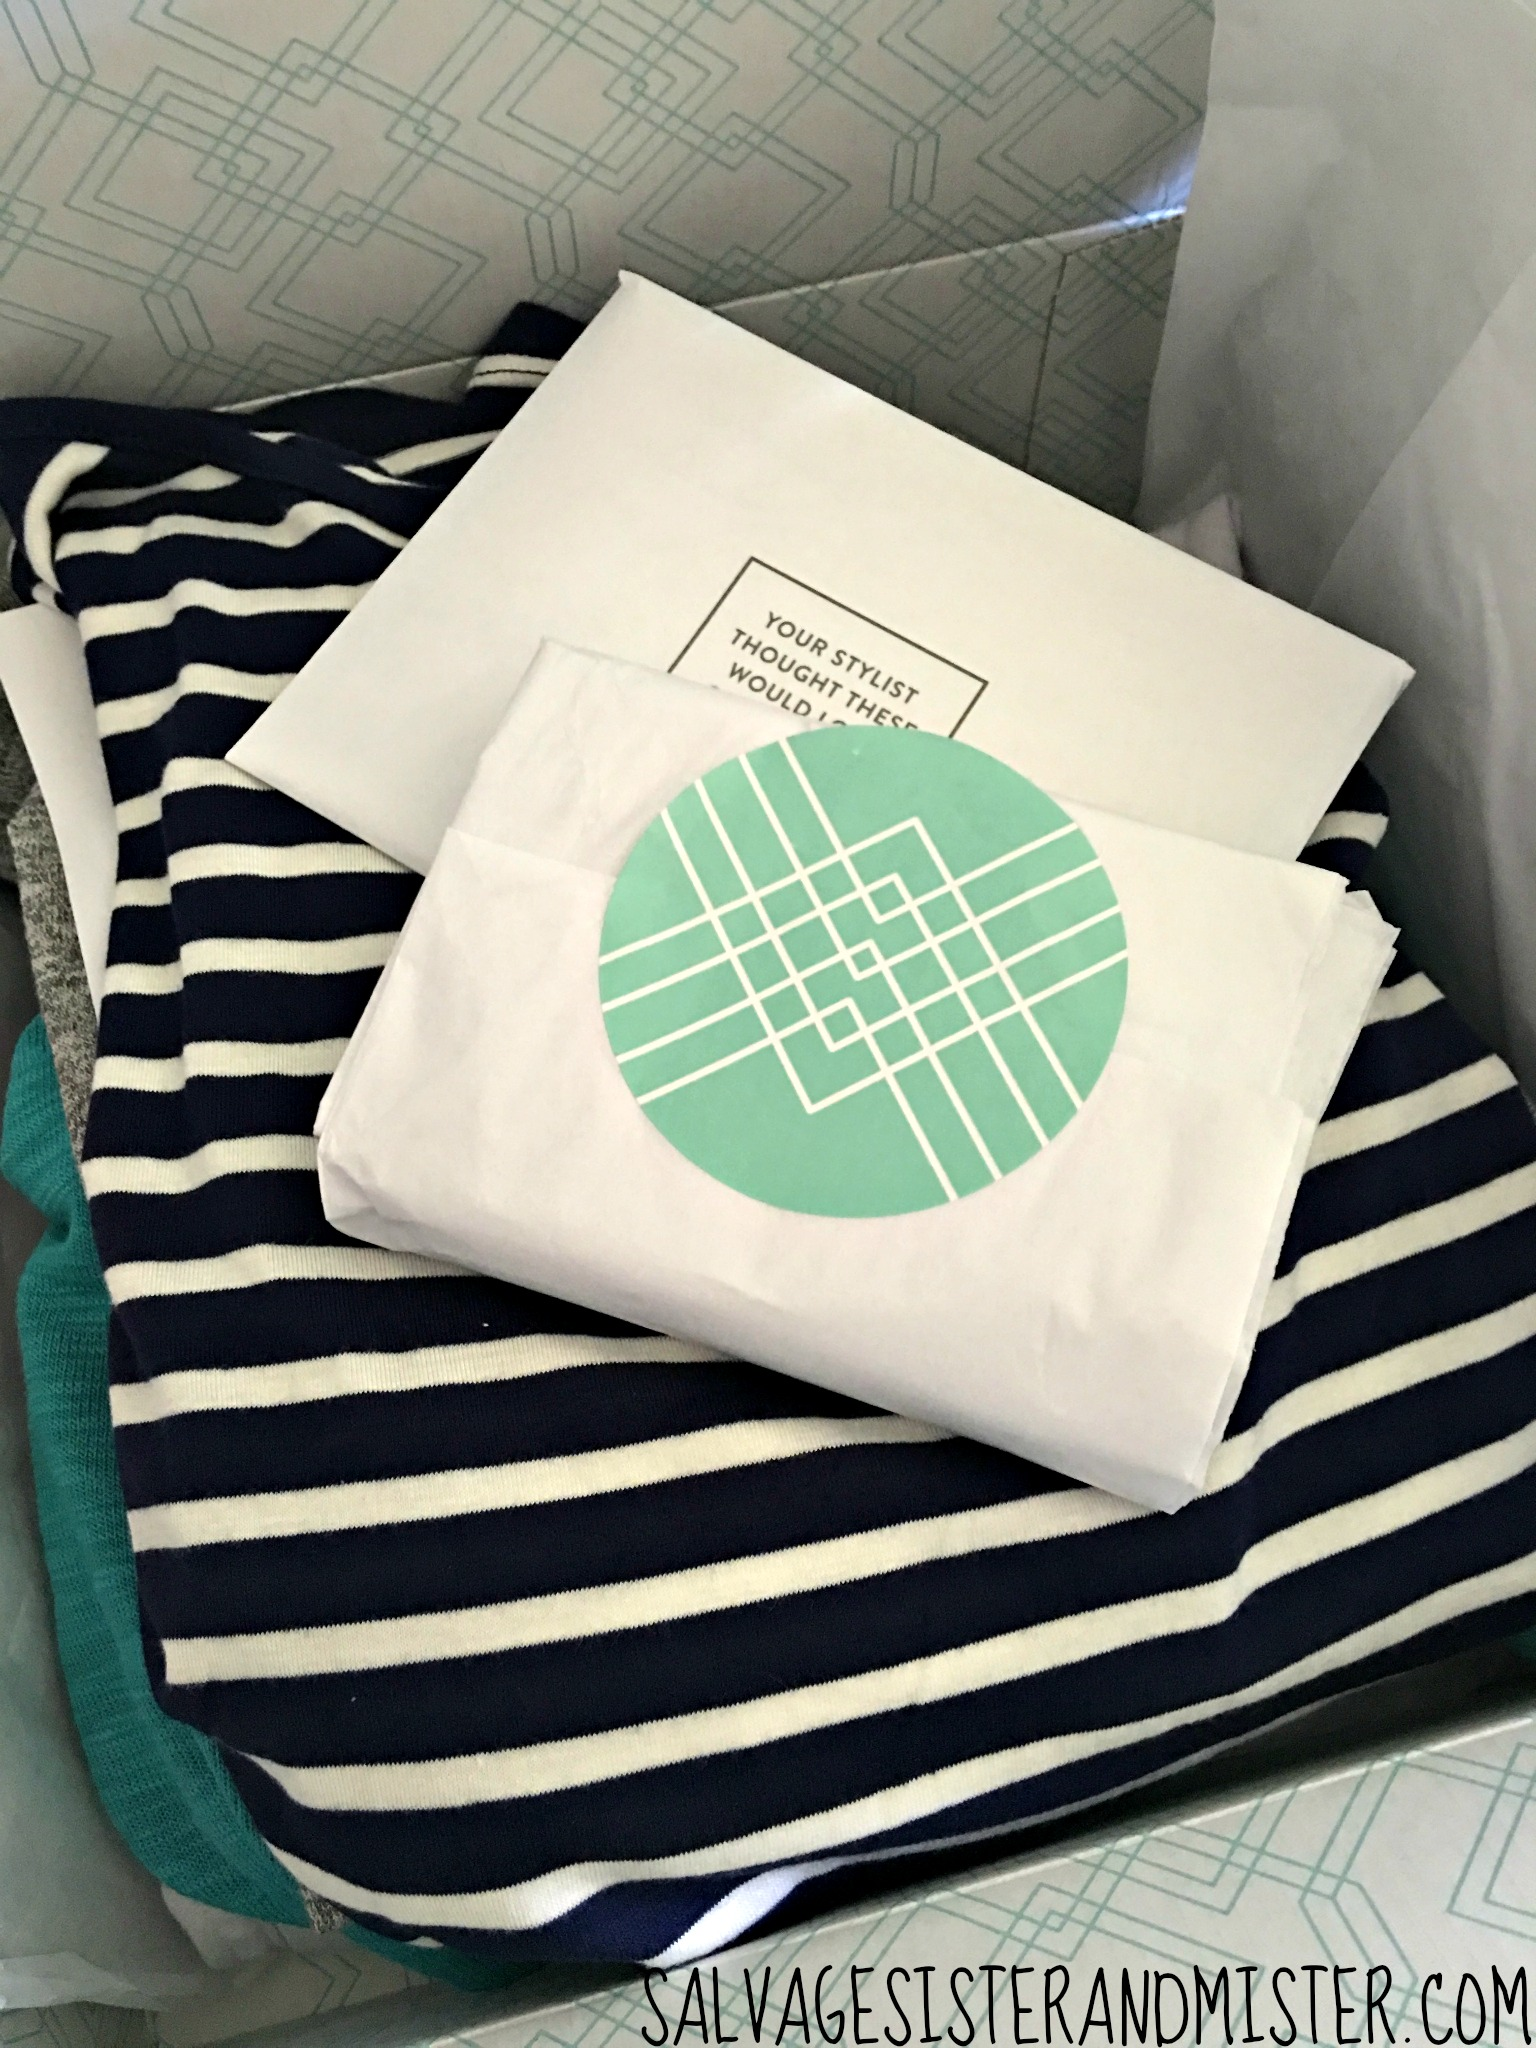 Stitch fix vs thred up. Comparing the two online clothing options for women.